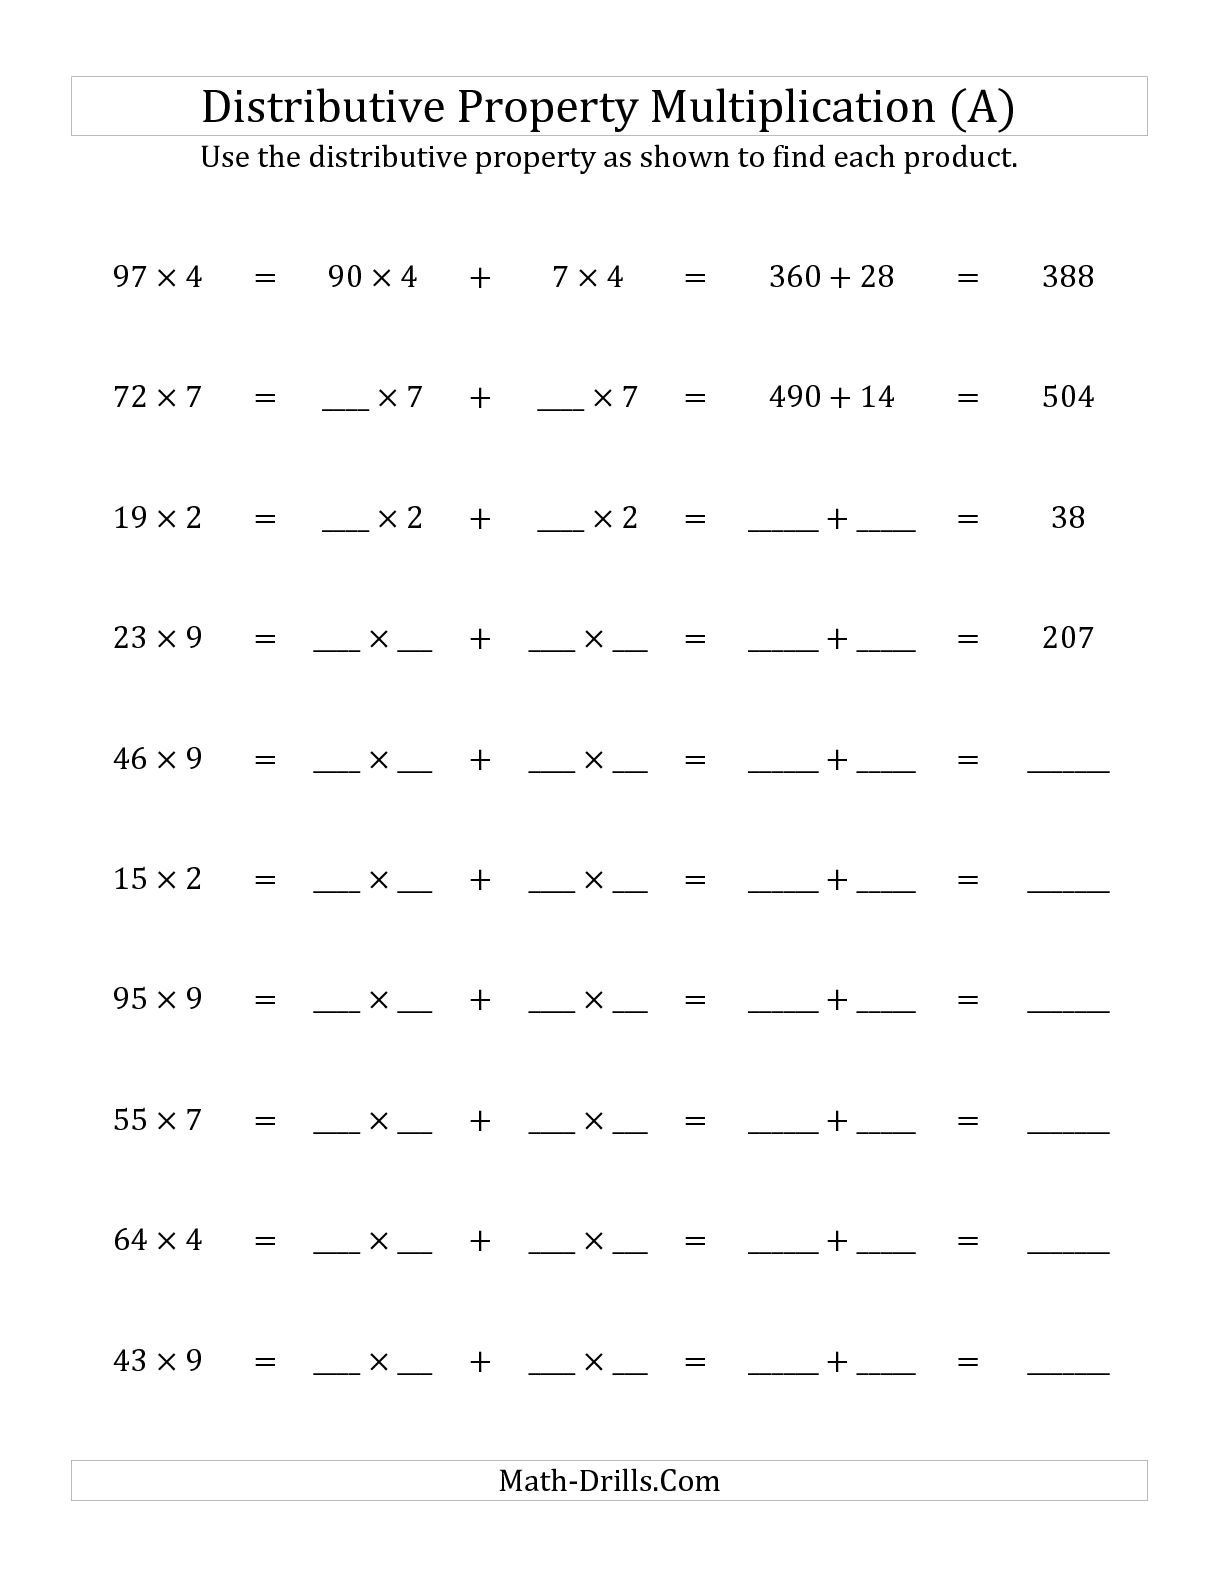 3rd Grade Distributive Property Worksheets the Multiply 2 Digit by 1 Digit Numbers Using the